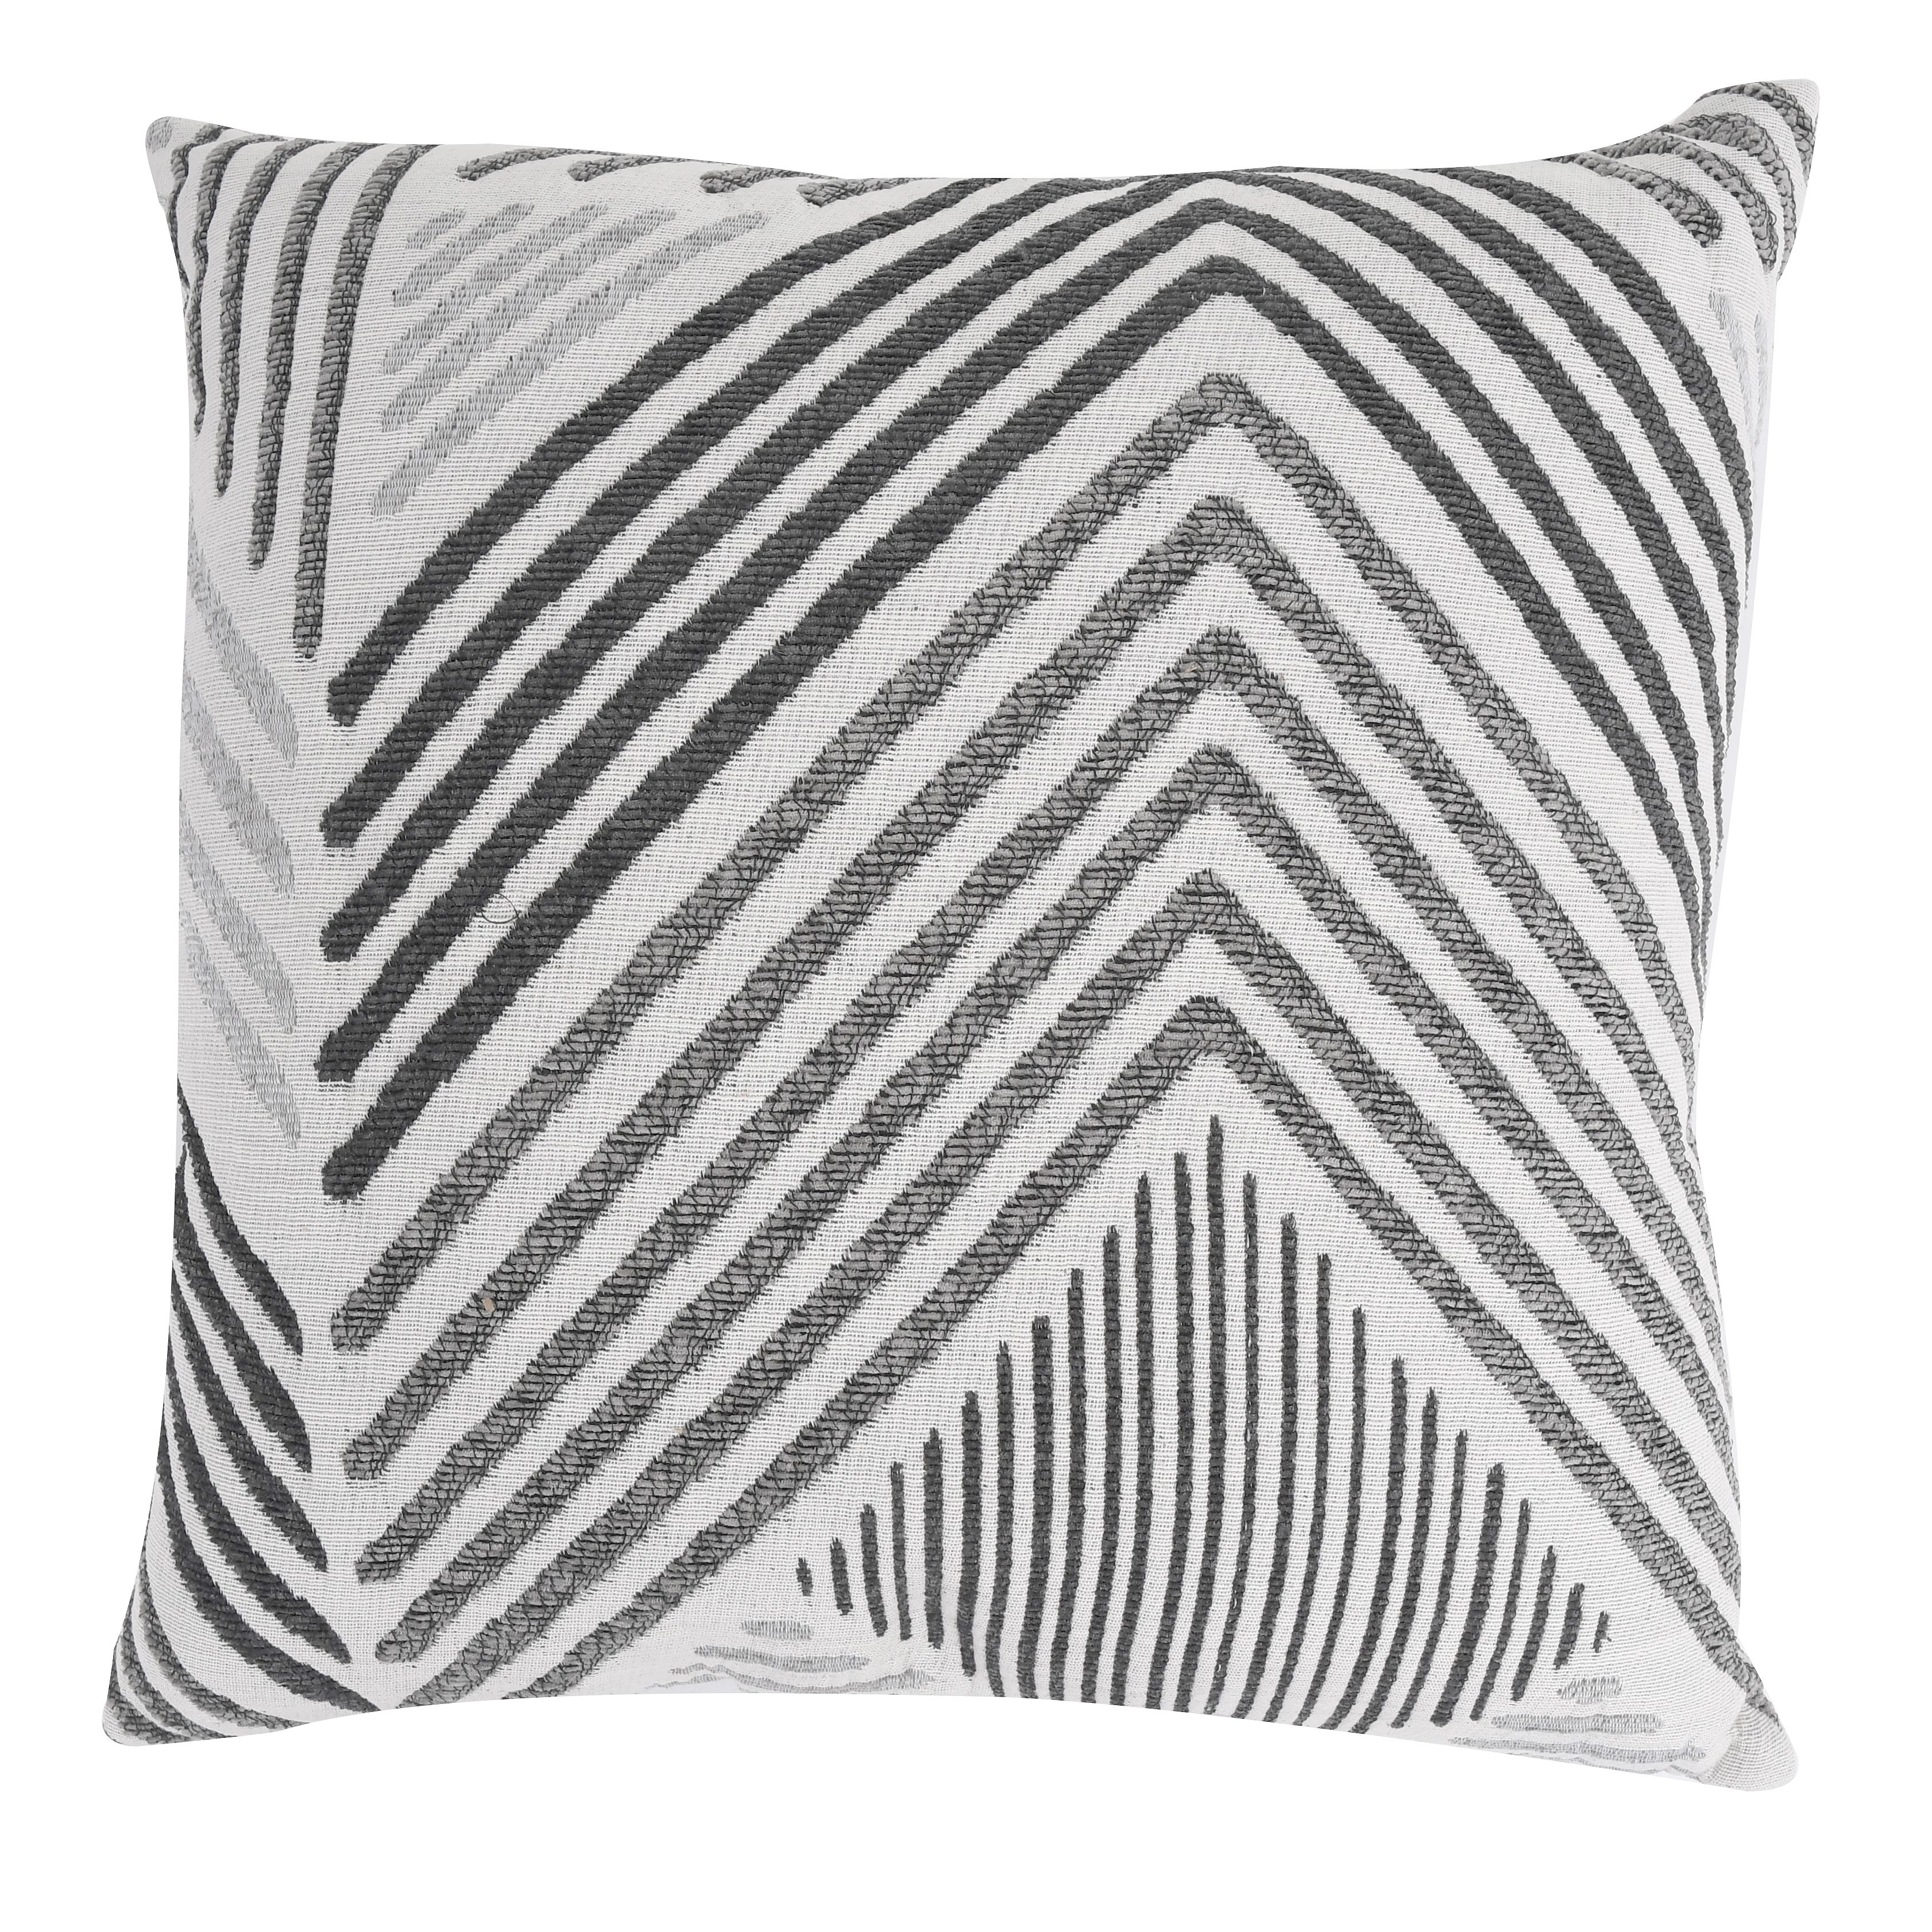 Home Decorative Throw Pillows Throw Pillows Pillows